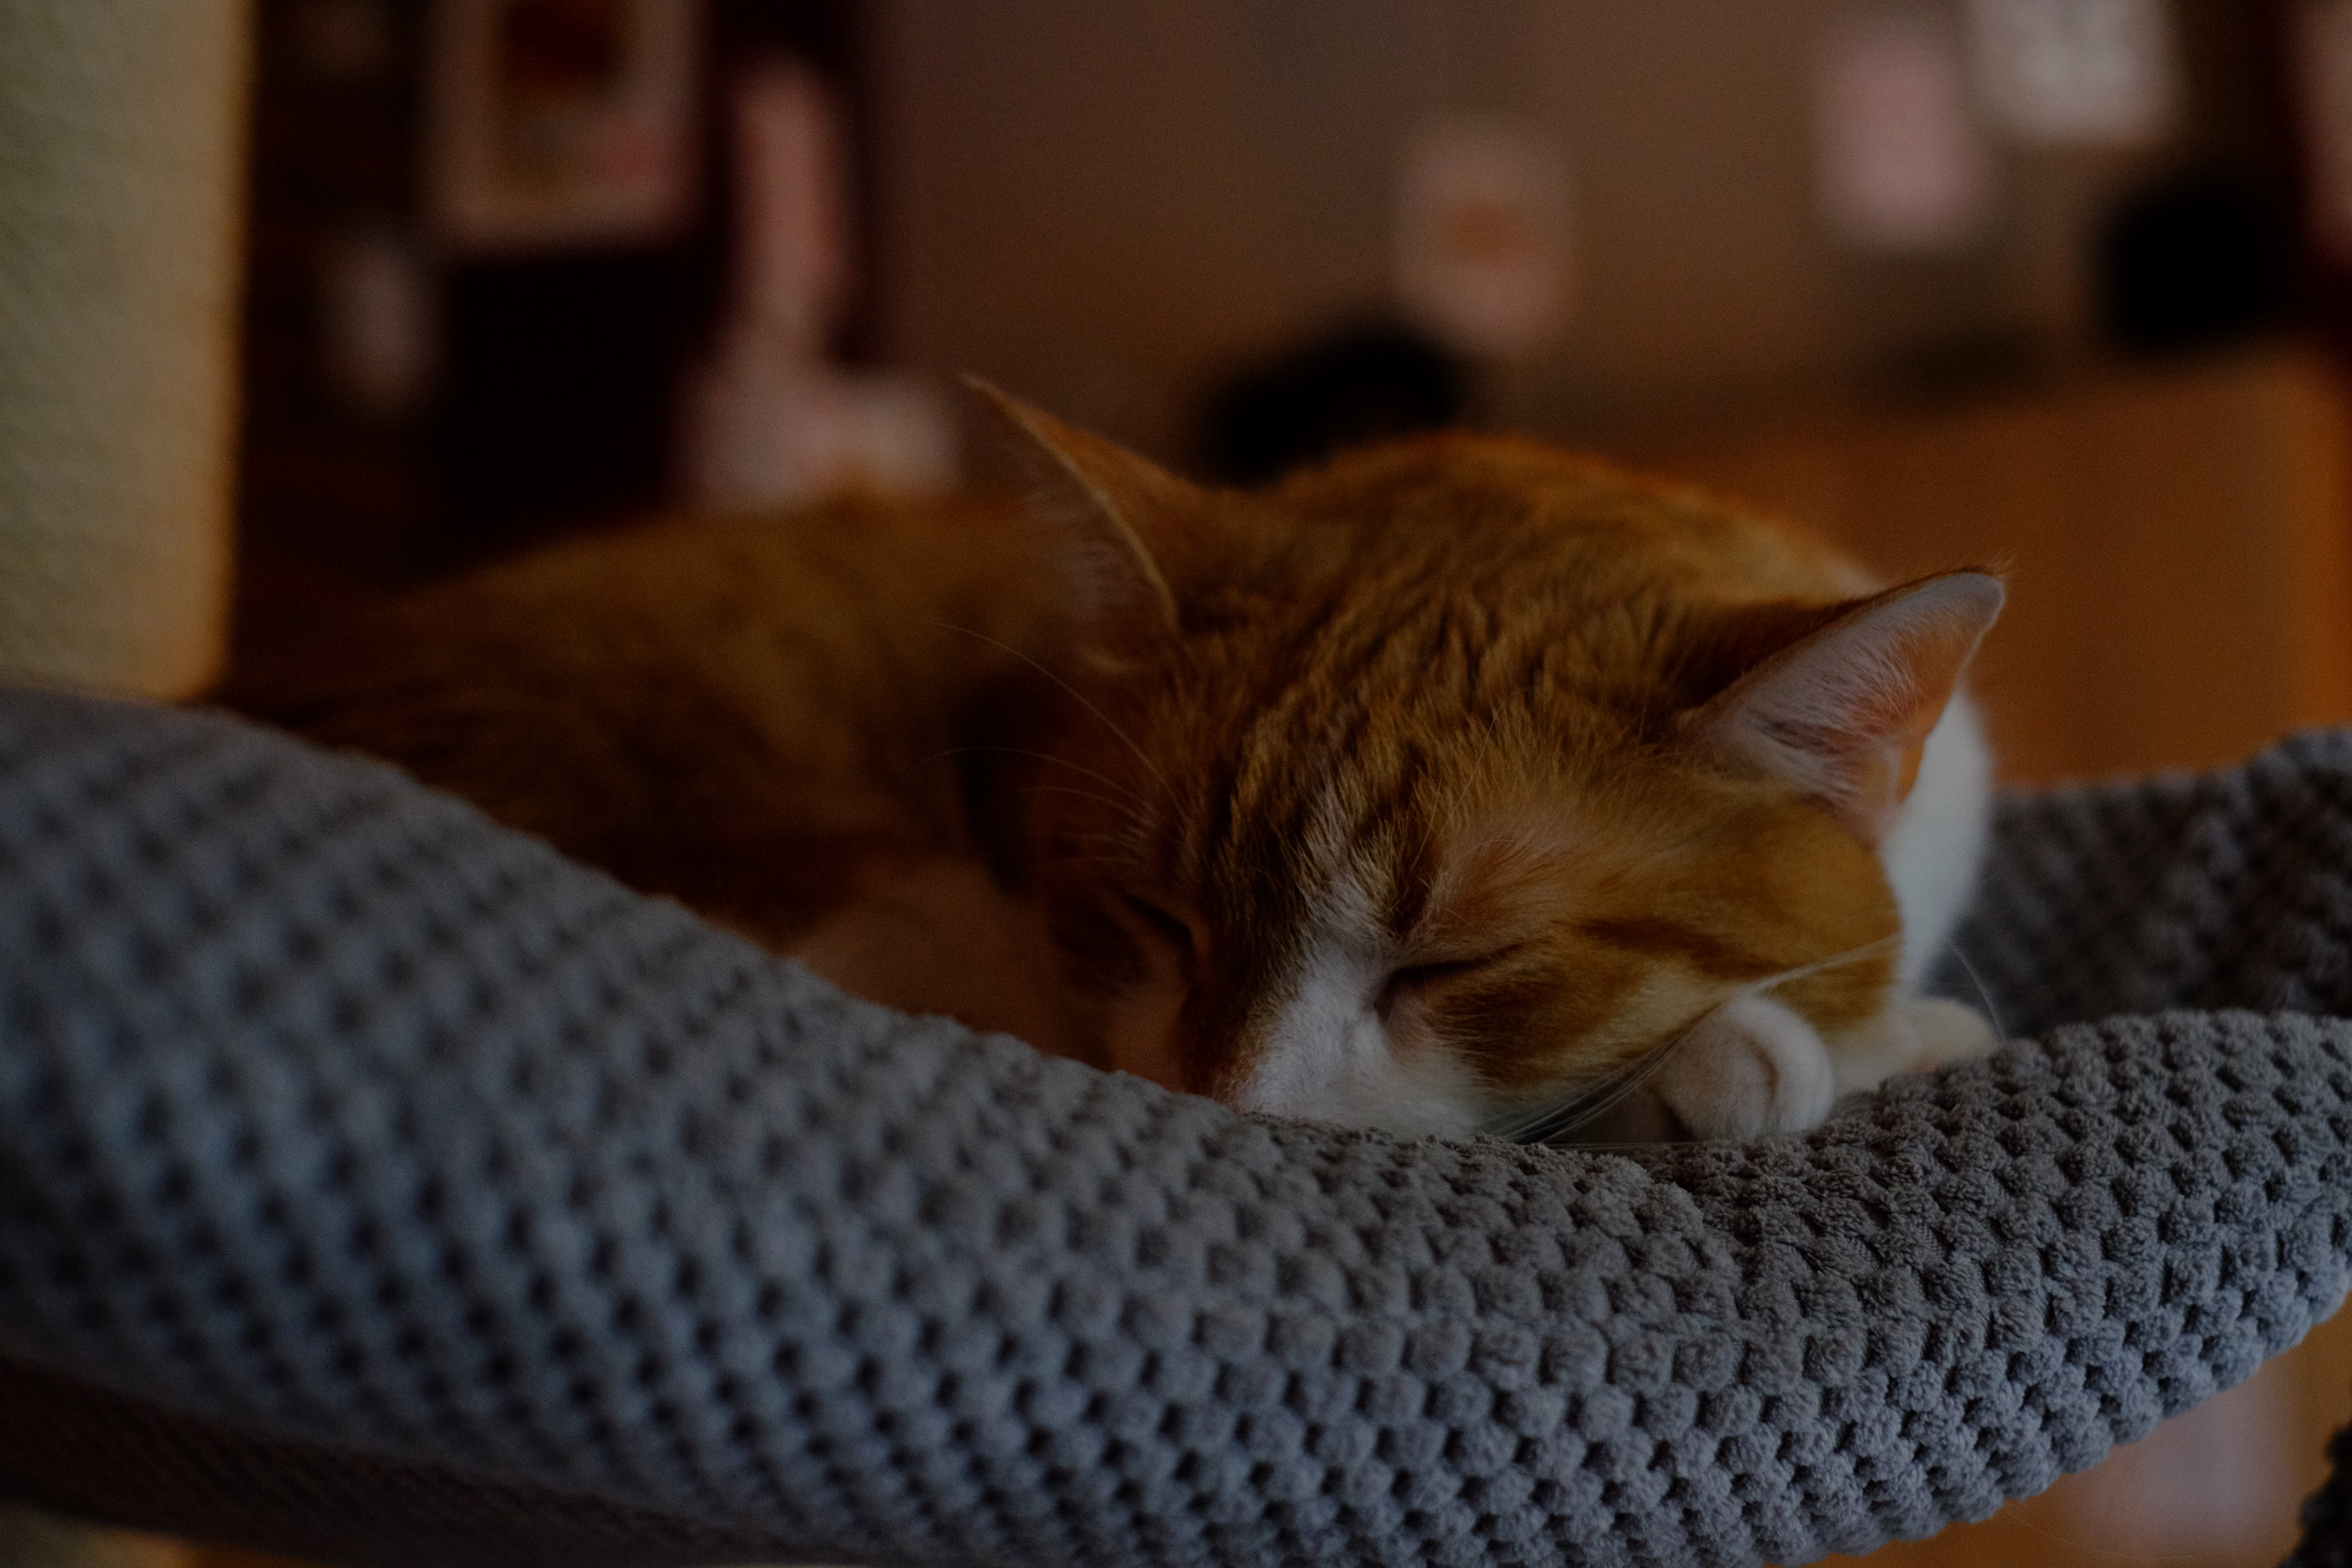 Orange Tabby Cat Sleeping on Gray Textile